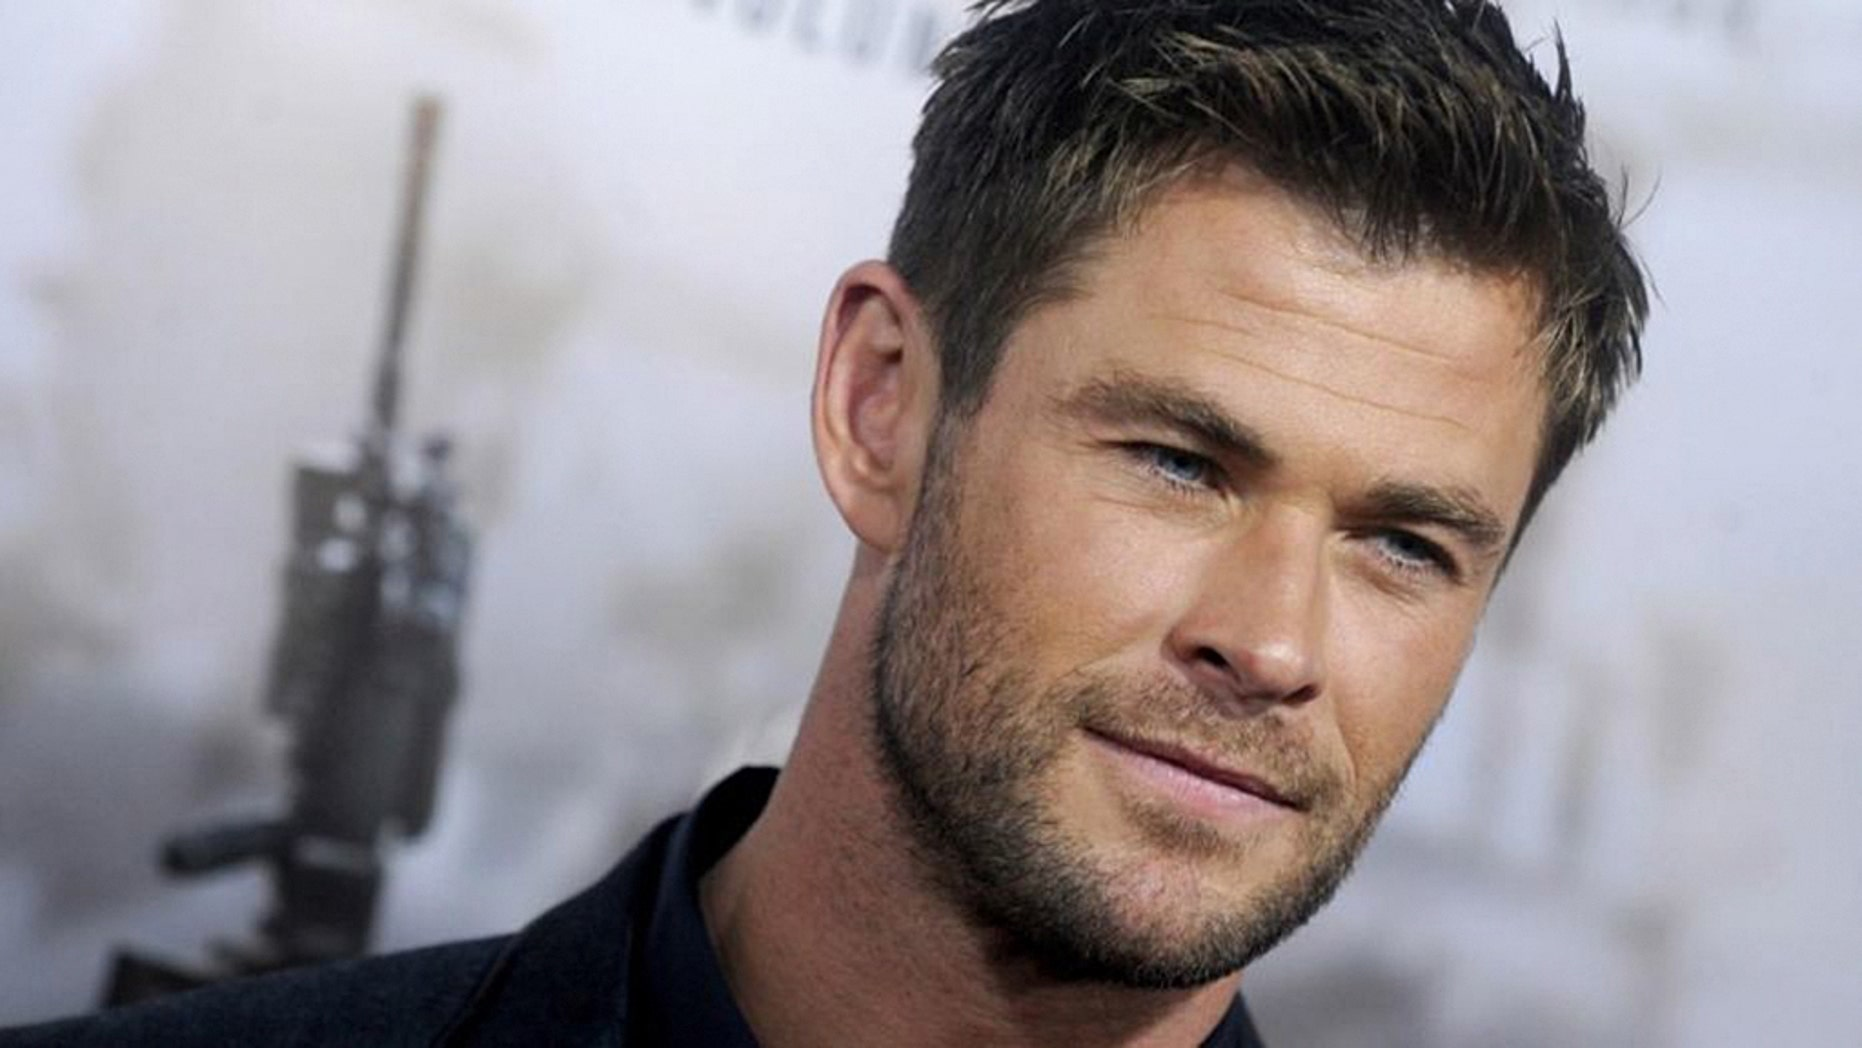 Actor Chris Hemsworth took to Instagram this week, sharing a photo of himself and an 'epic' animal he said he'd encountered in Australia.